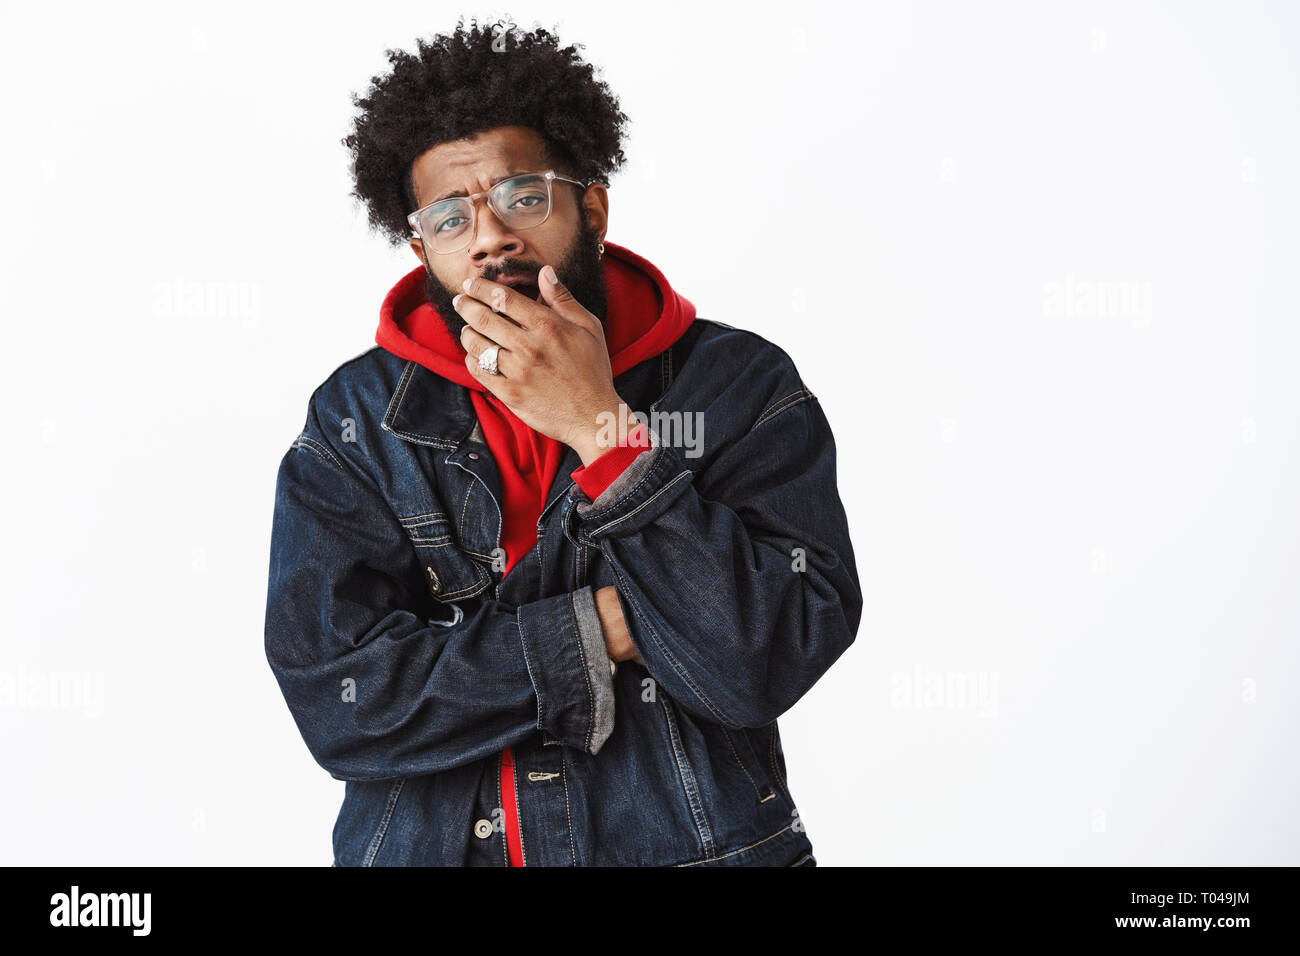 Not impressive nor interesting. Portrait of indifferent african american man watching boring movie wearing glasses, denim jacket over hoodie, yawning - Stock Image